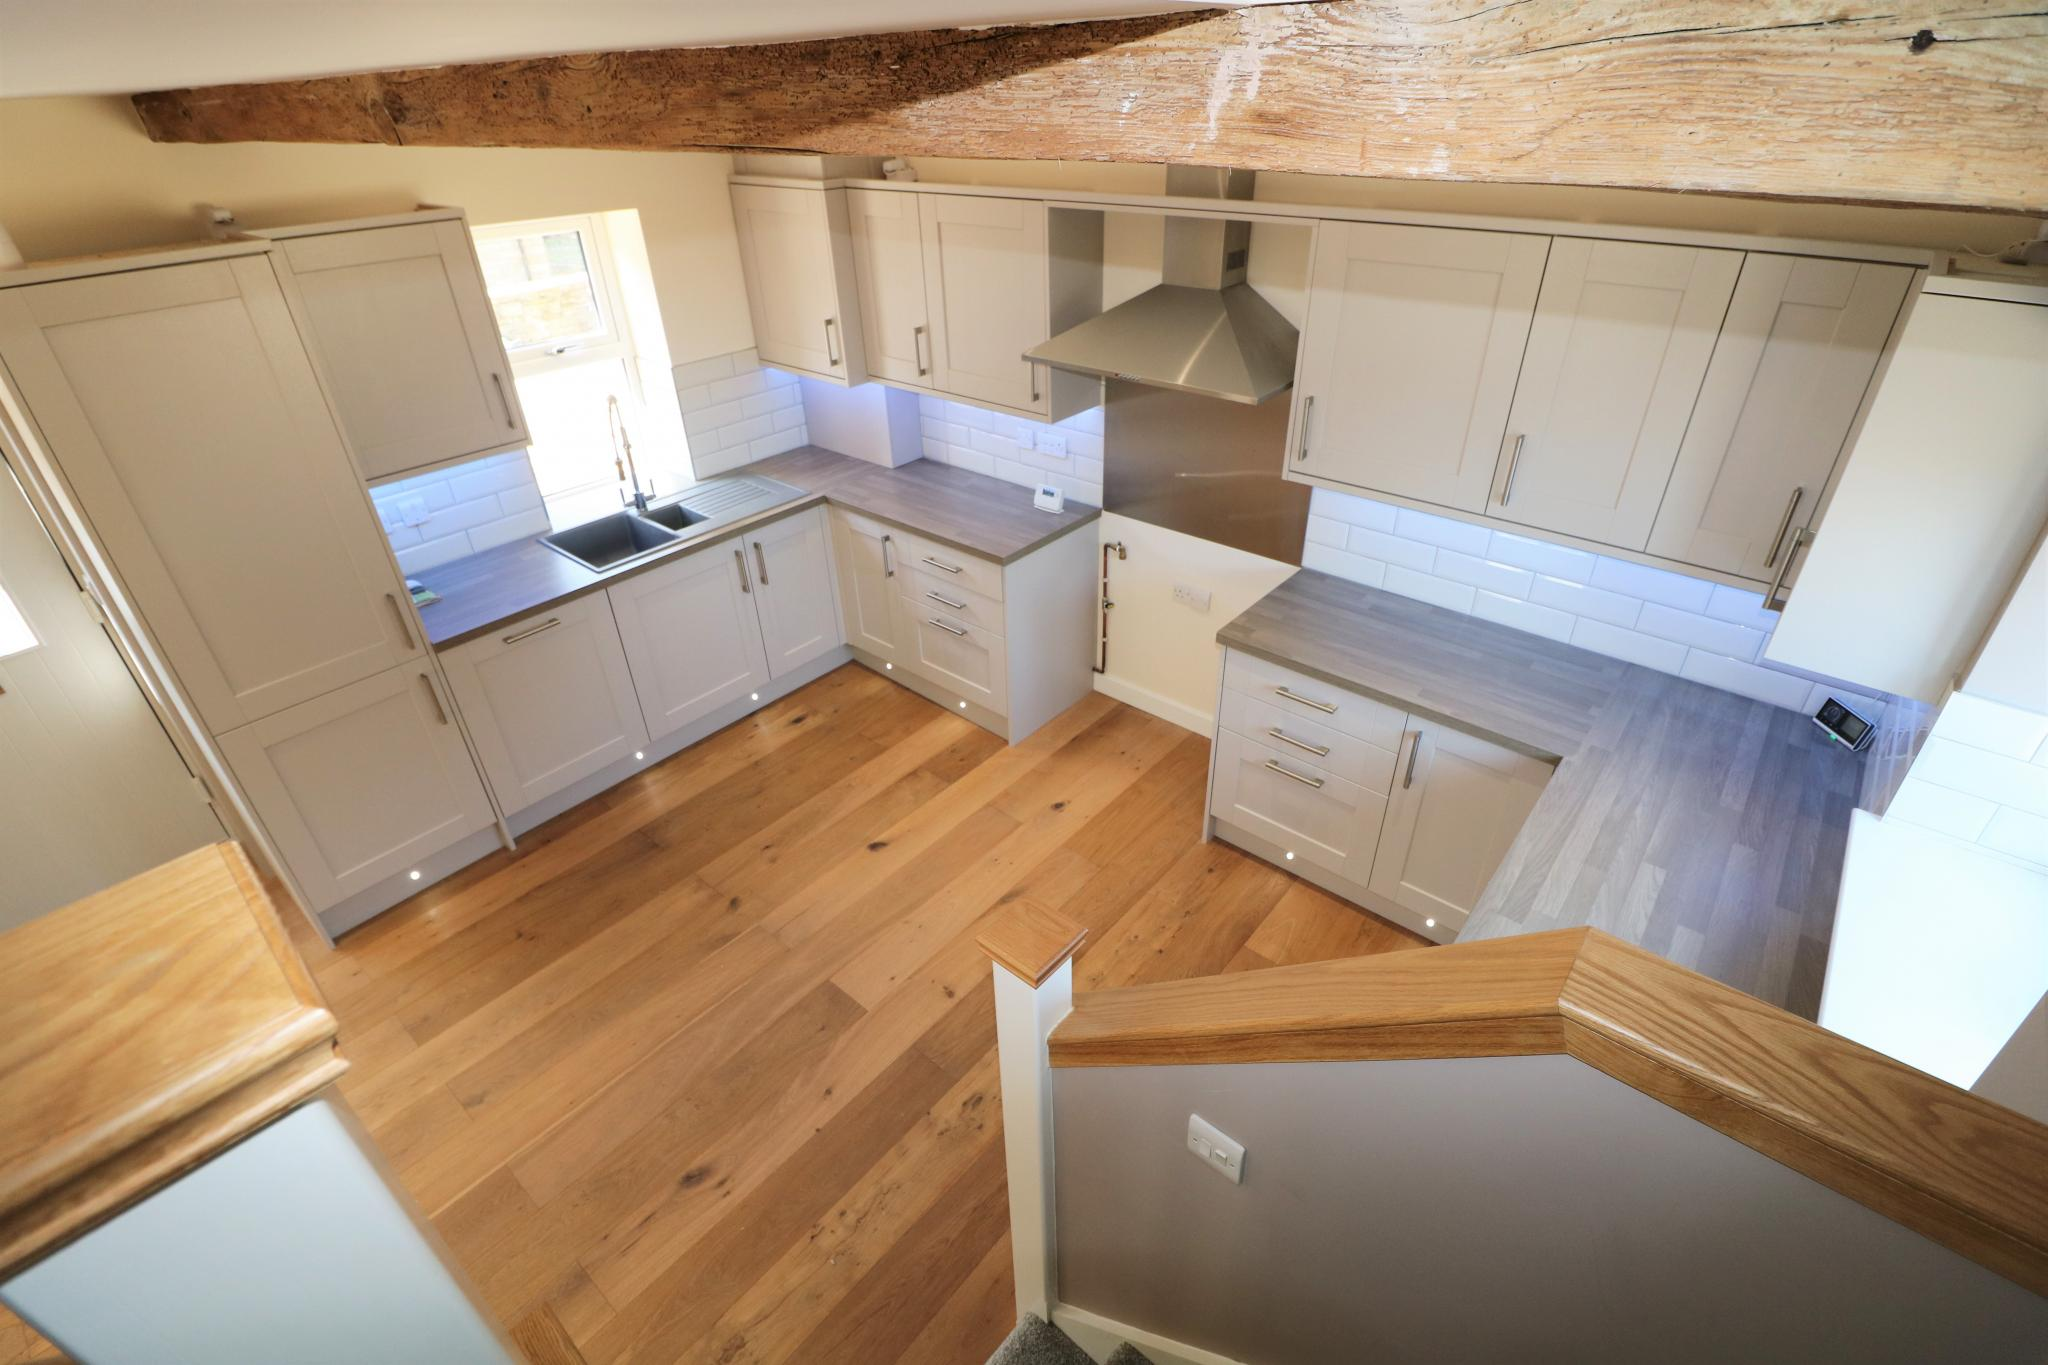 3 Bedroom Barn Conversion House For Sale - Photograph 4